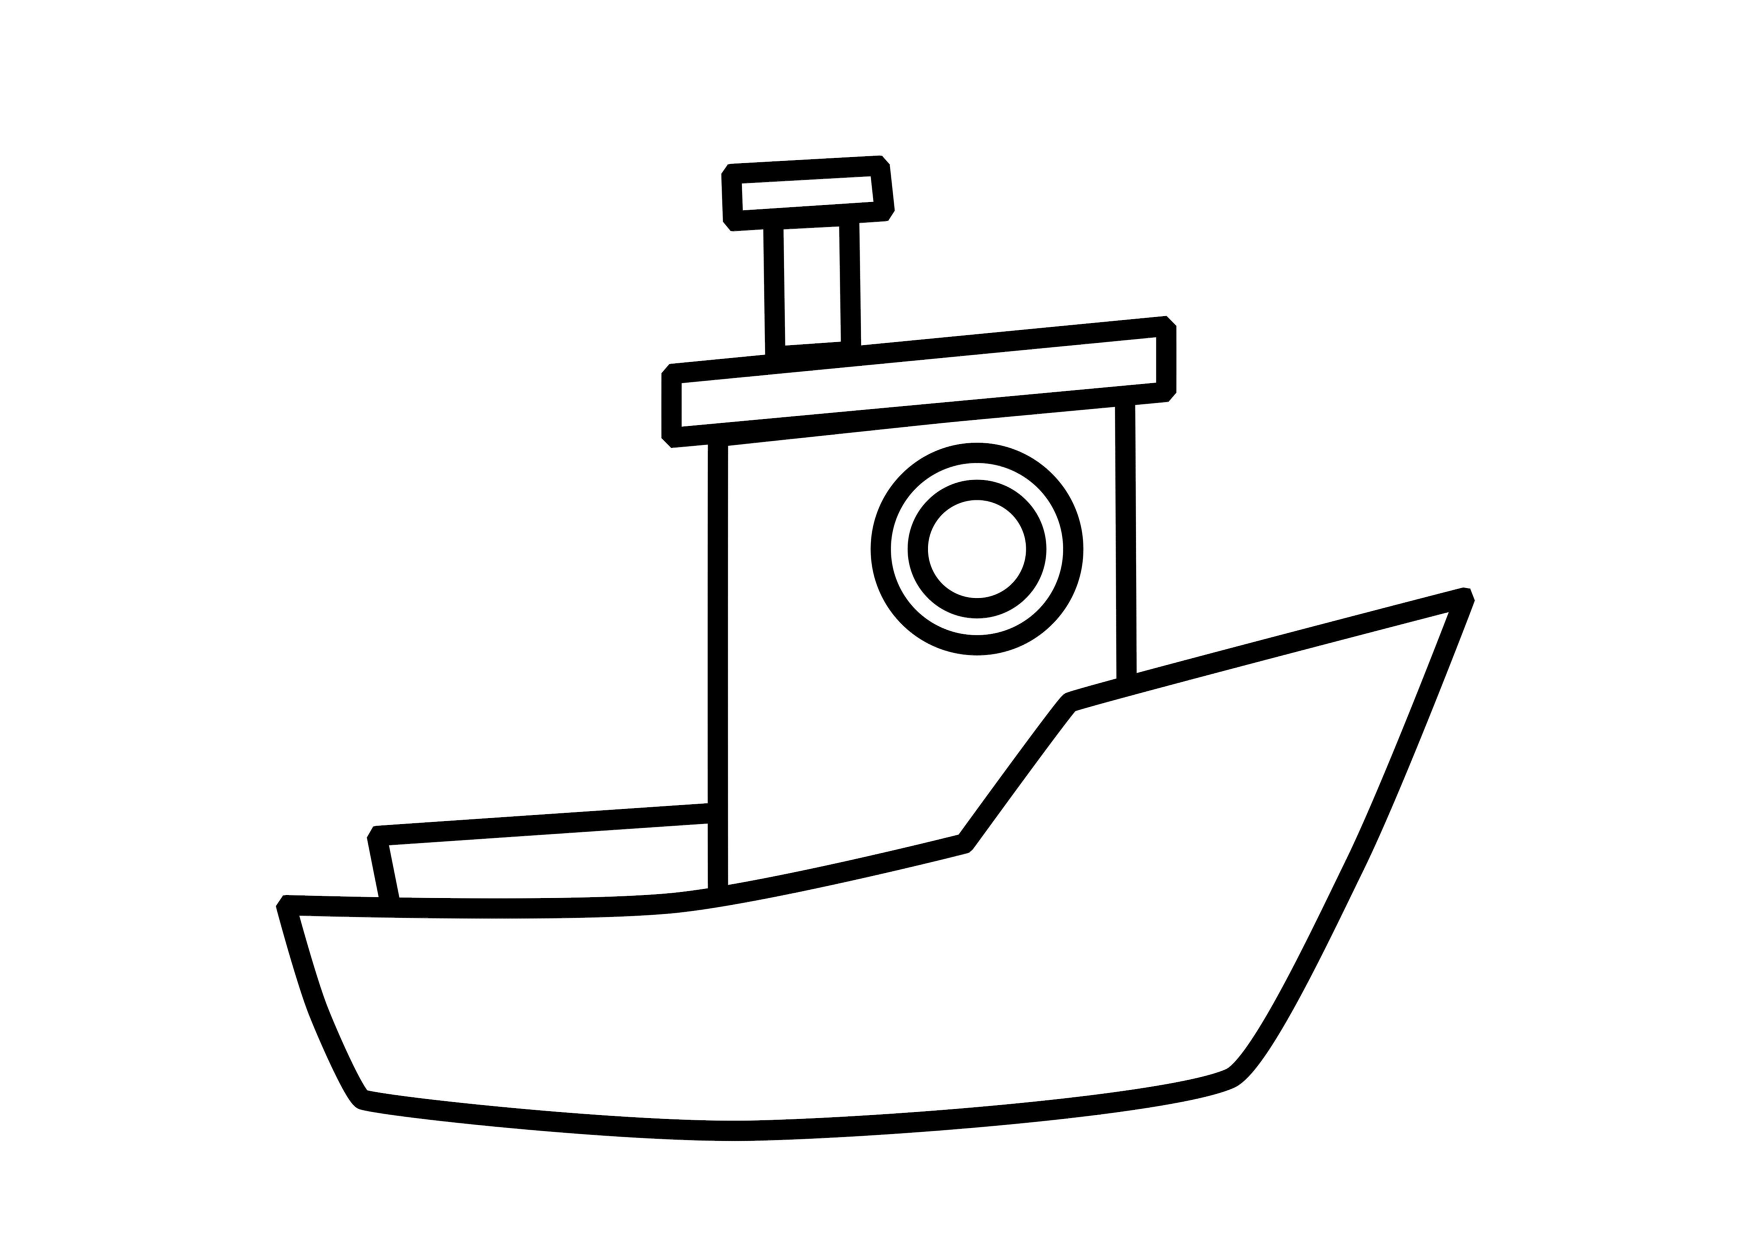 Boat coloring pages to download and print for free